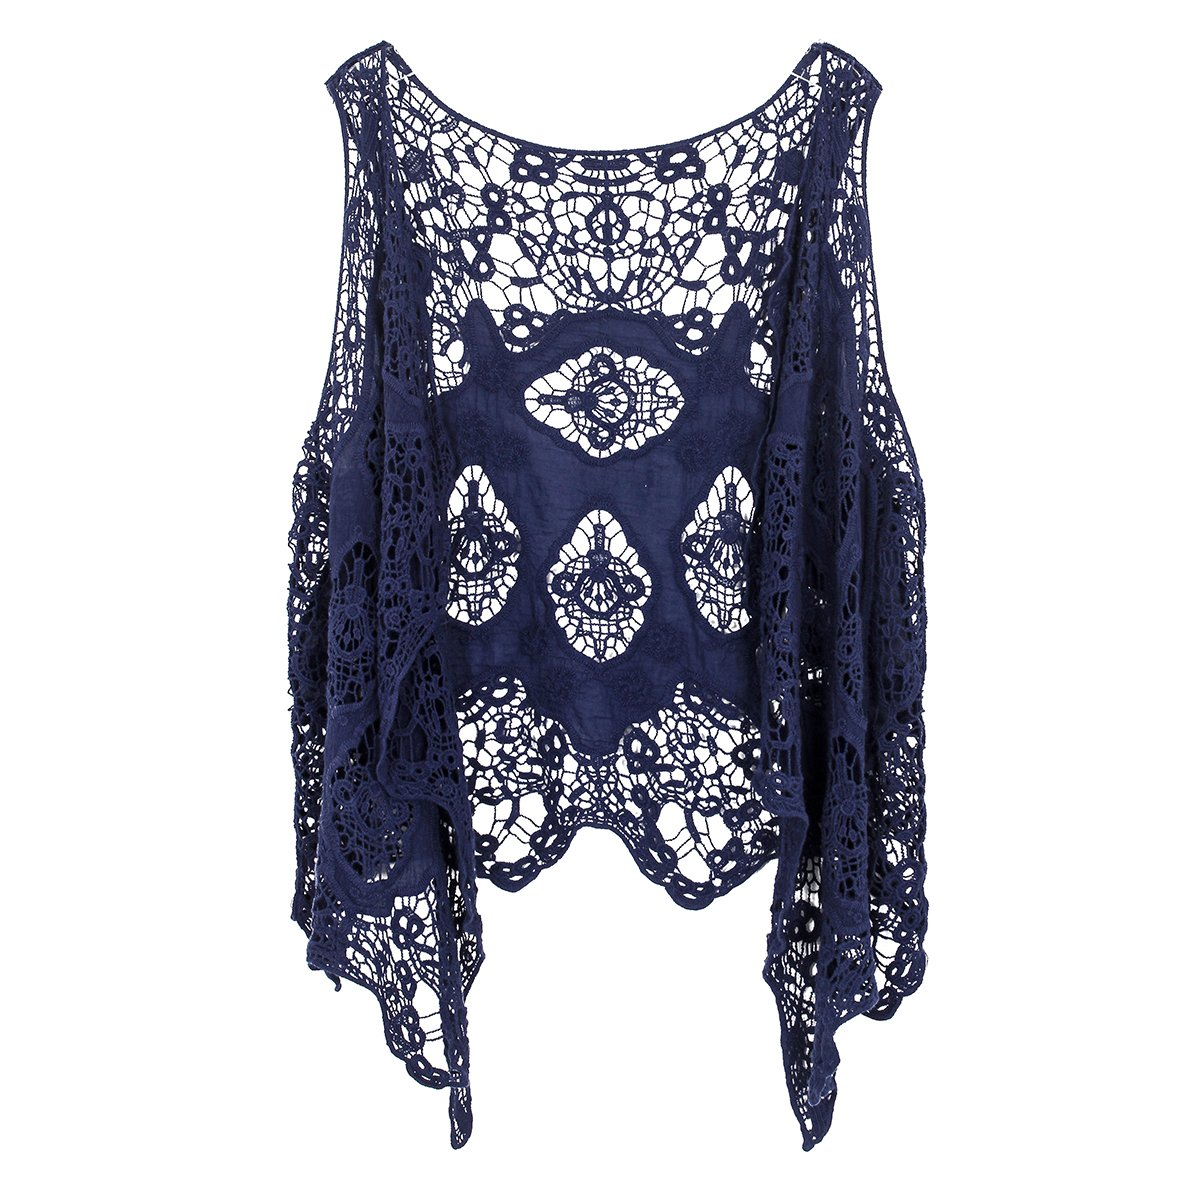 Jastie Open Stitch Cardigan Boho Hippie Butterfly Crochet Vest (Dark Blue)